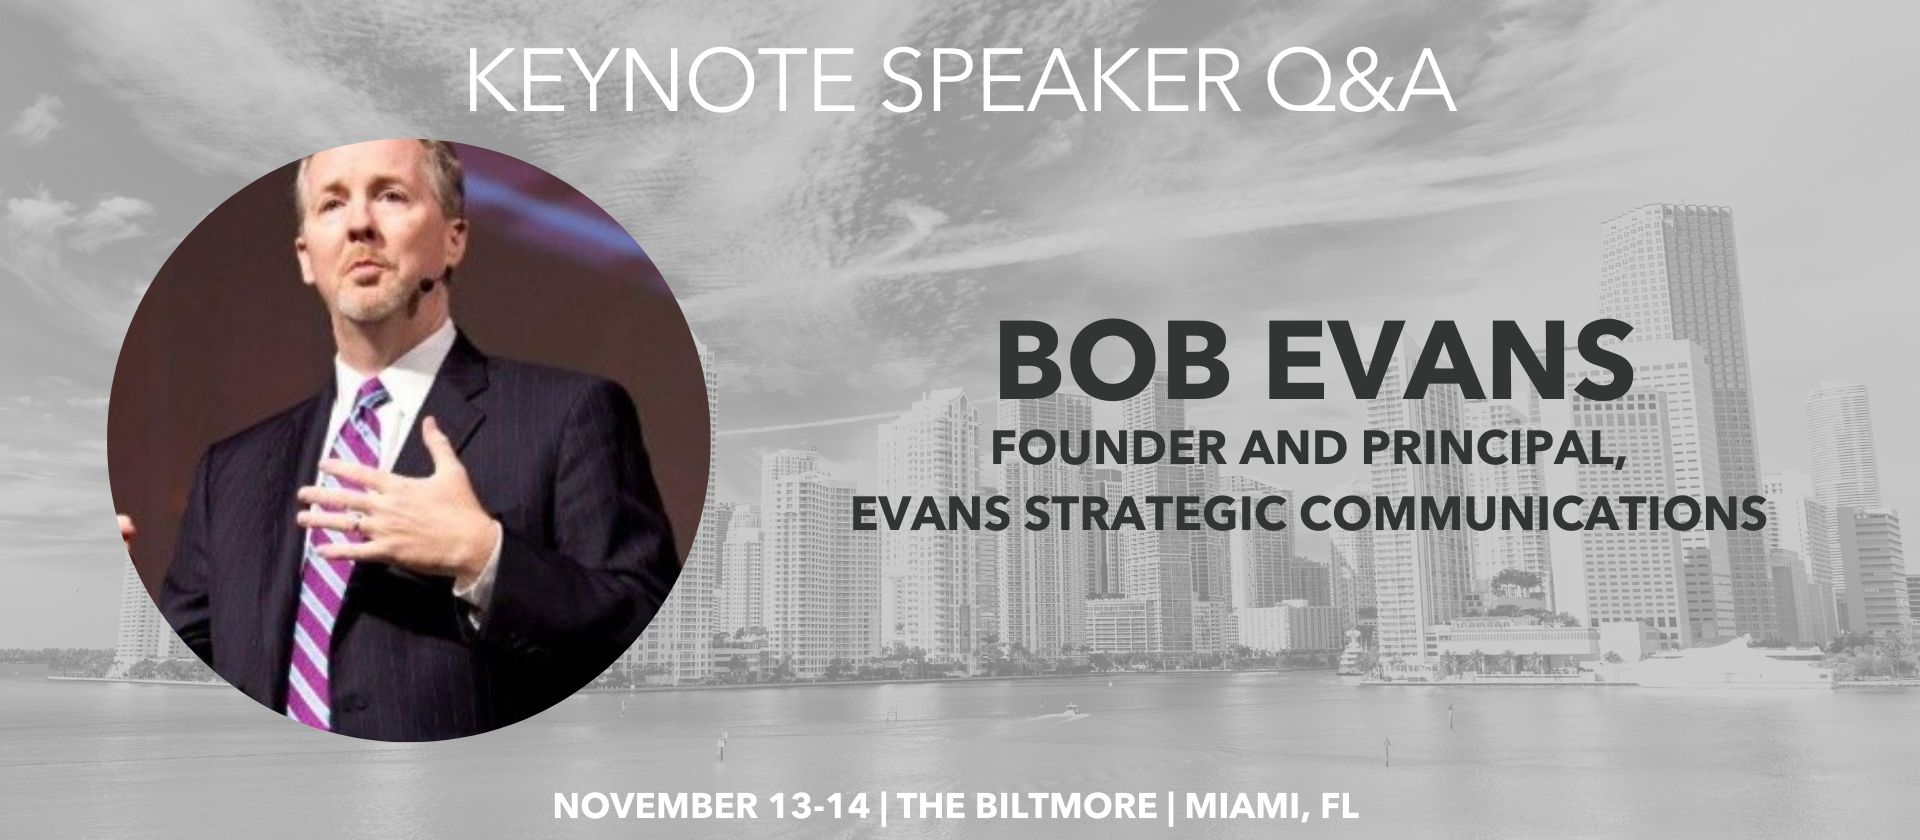 Bob Evans Keynote Speaker Q&A Millennium Alliance